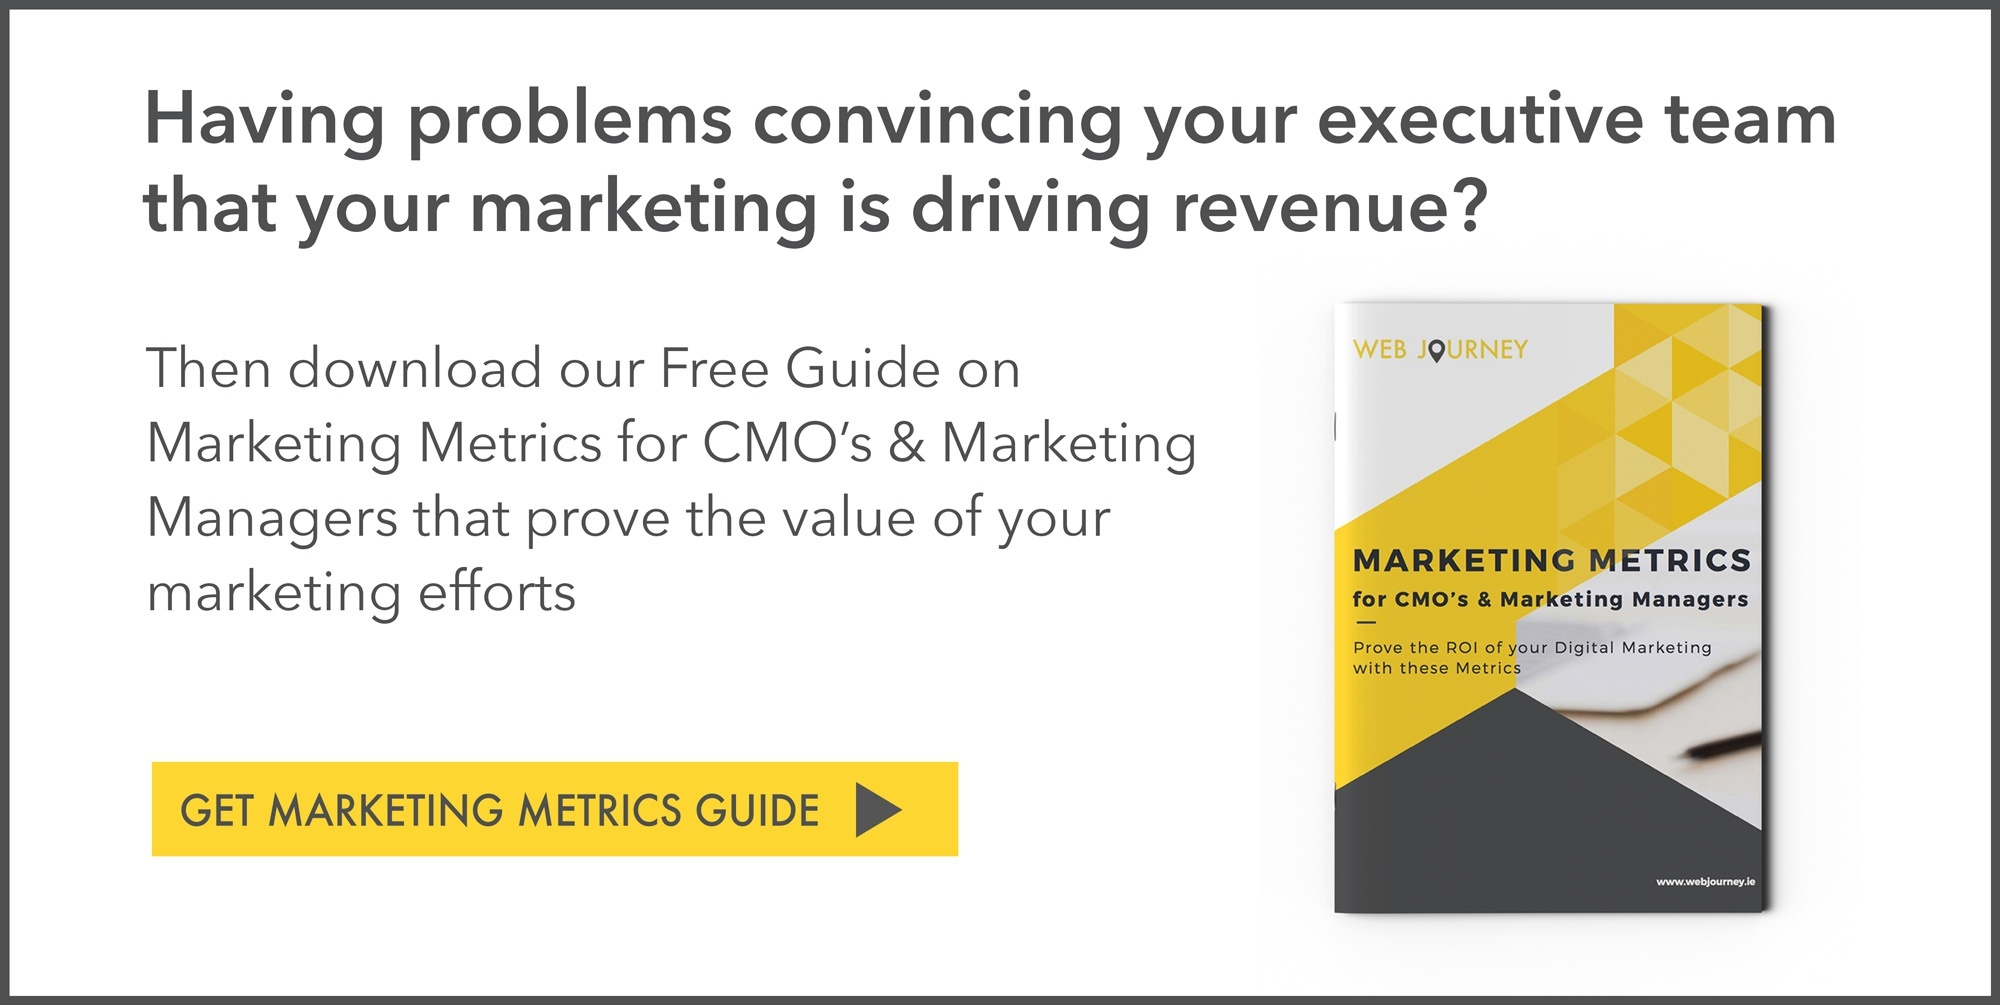 Marketing Metrics for CMO's and Marketing Managers